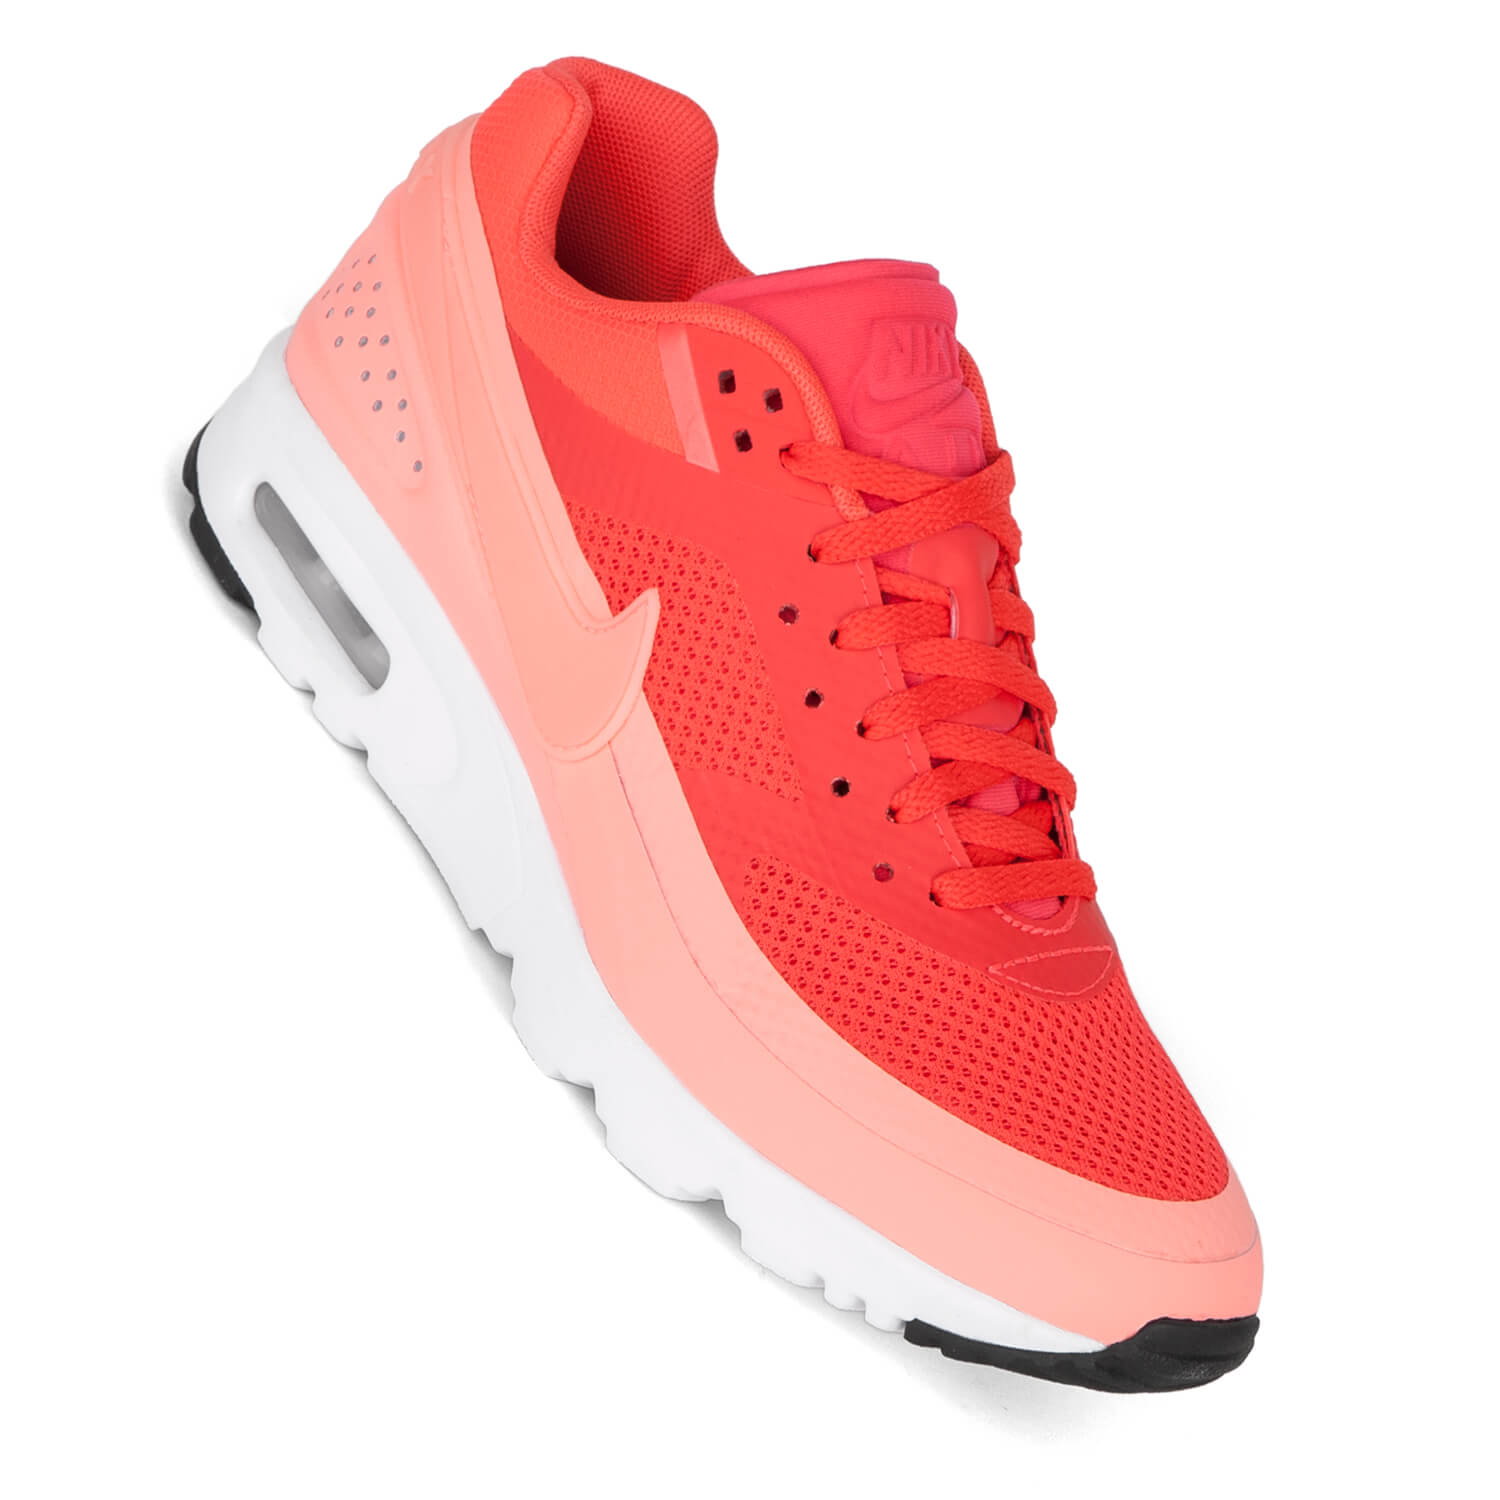 nike air max bw ultra bright crimson atomic pink. Black Bedroom Furniture Sets. Home Design Ideas